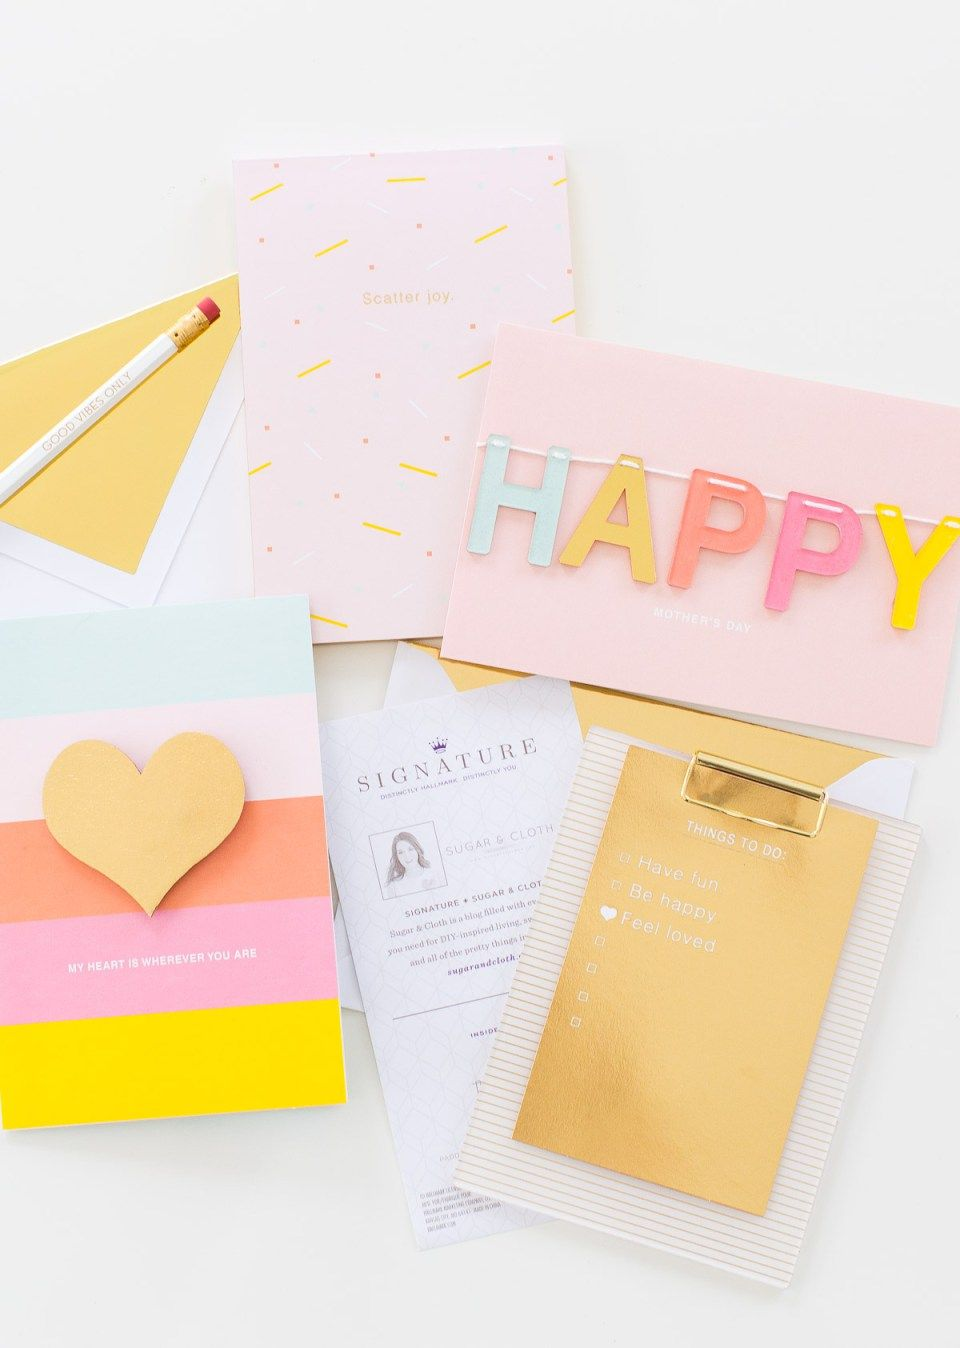 The full scoop on our motherus day cards for hallmark video